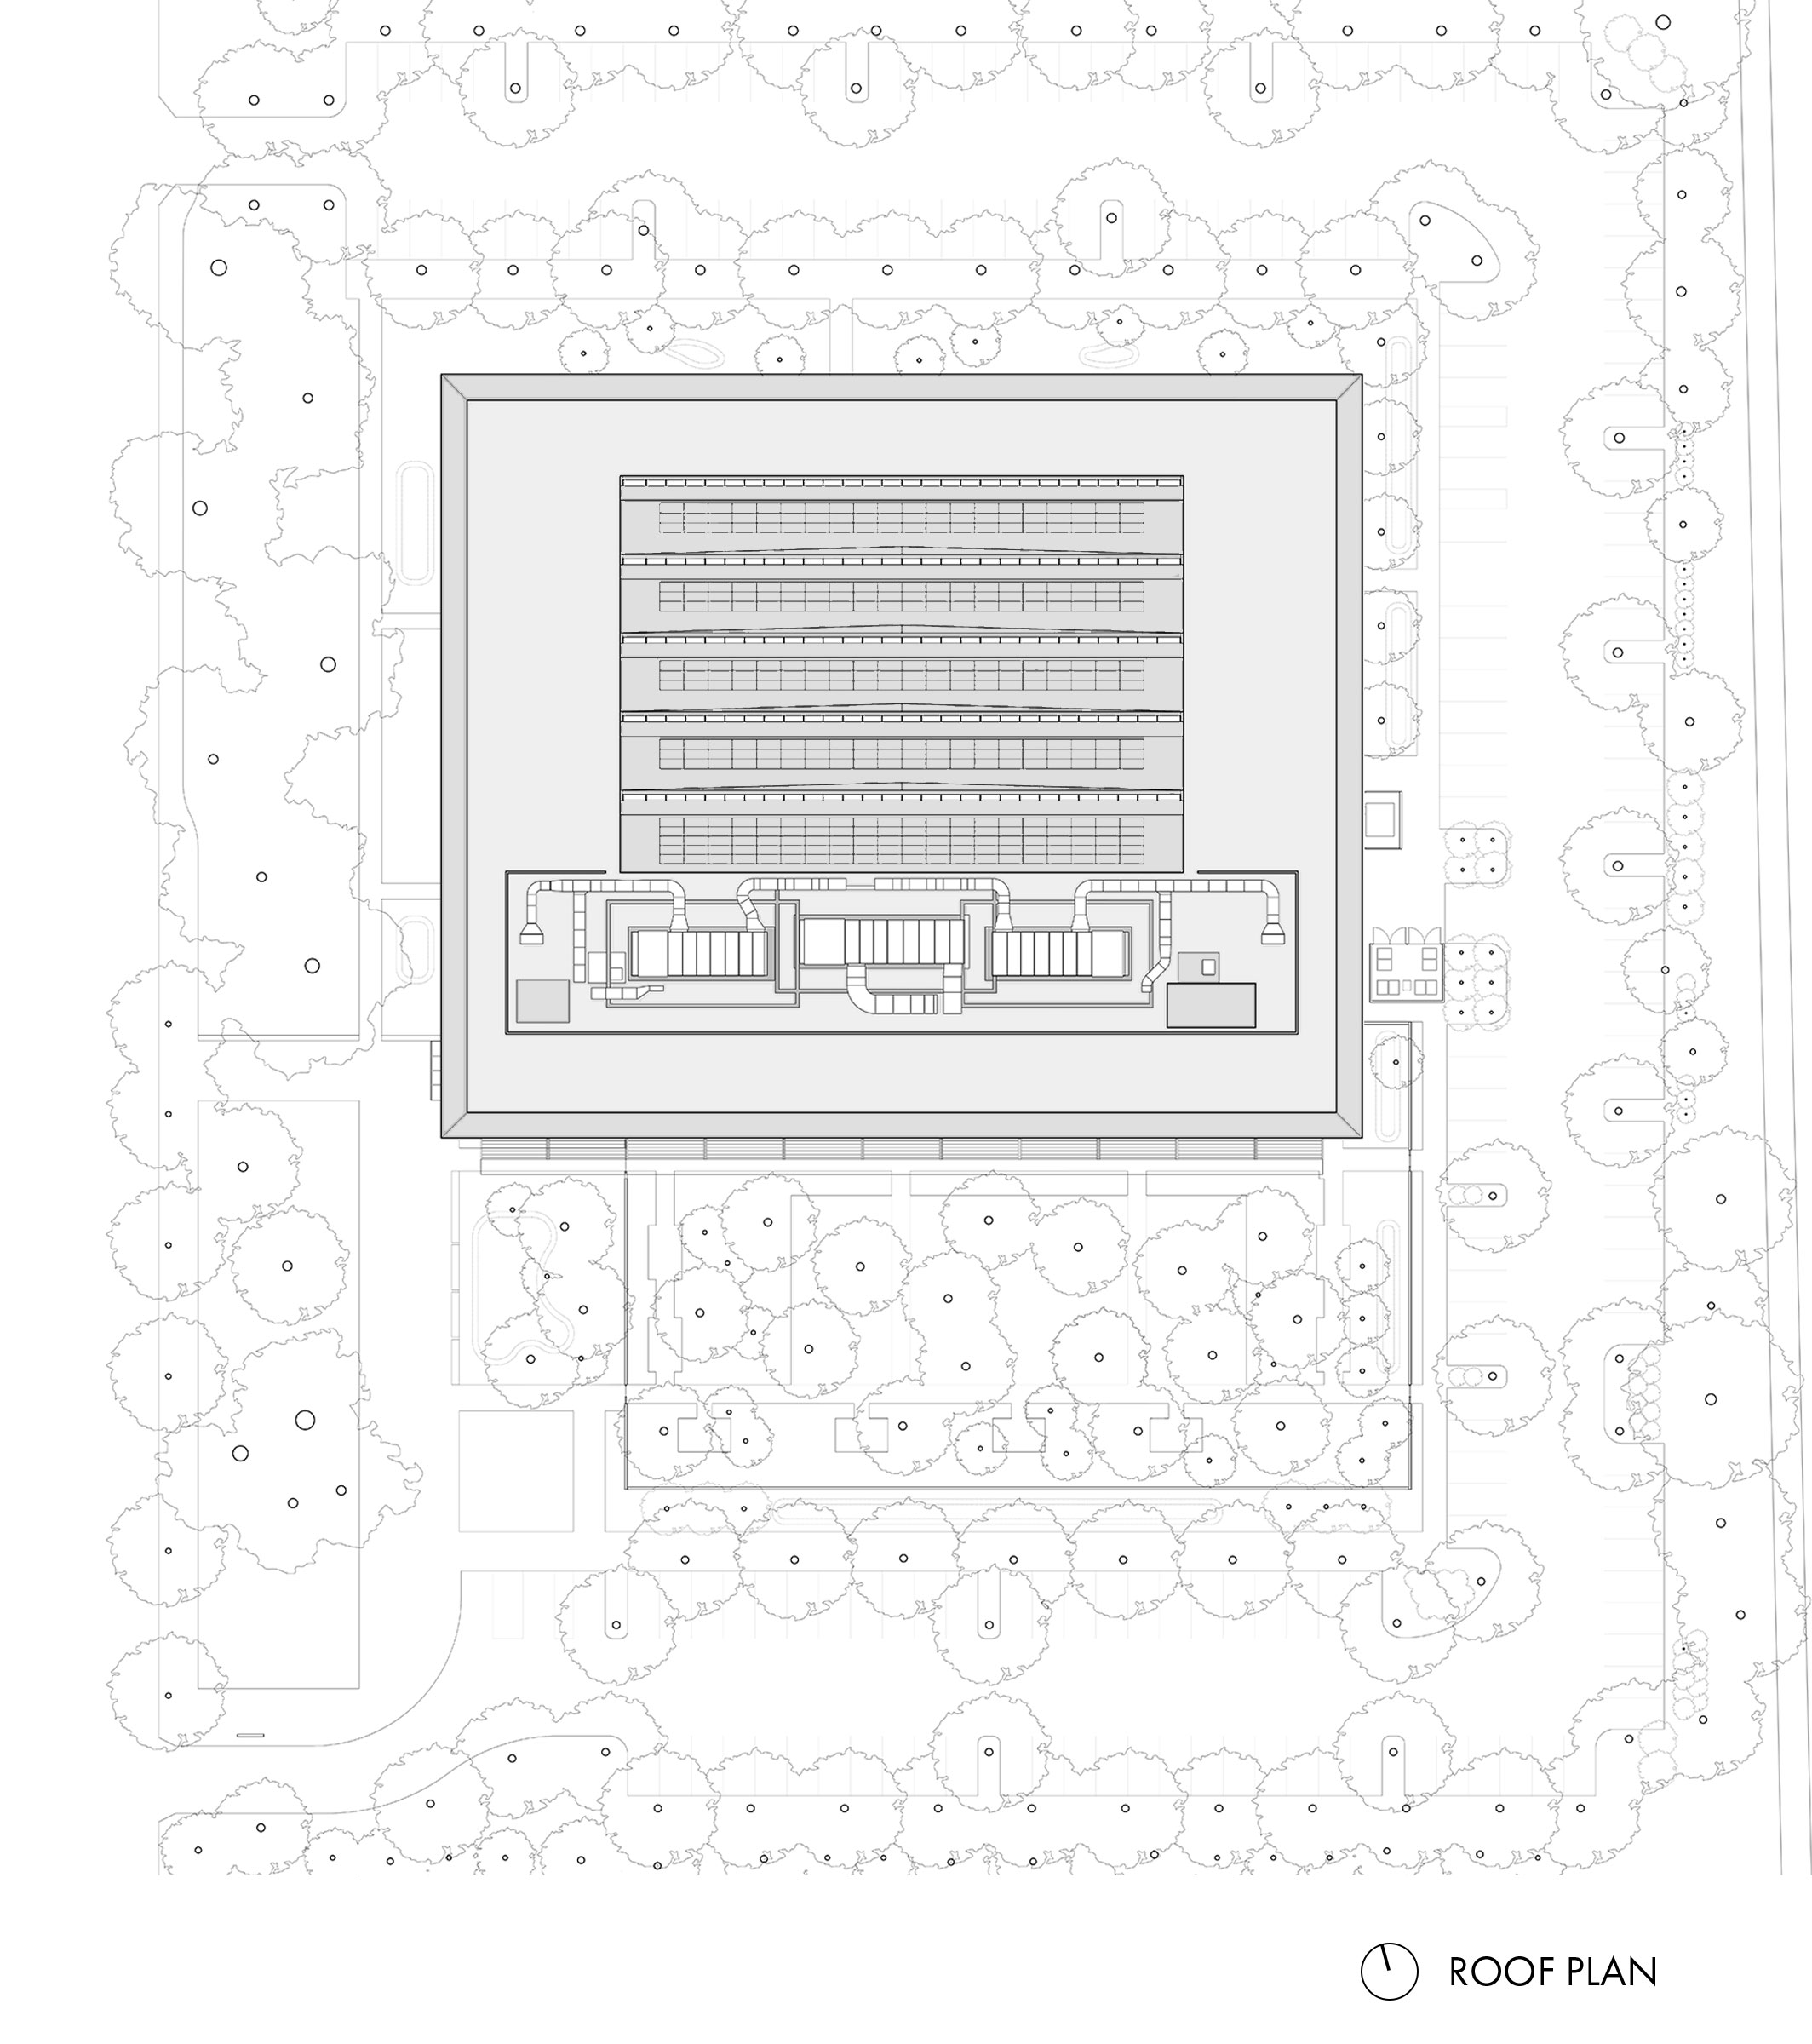 Copy of Google at 1212 Bordeaux Roof Plan